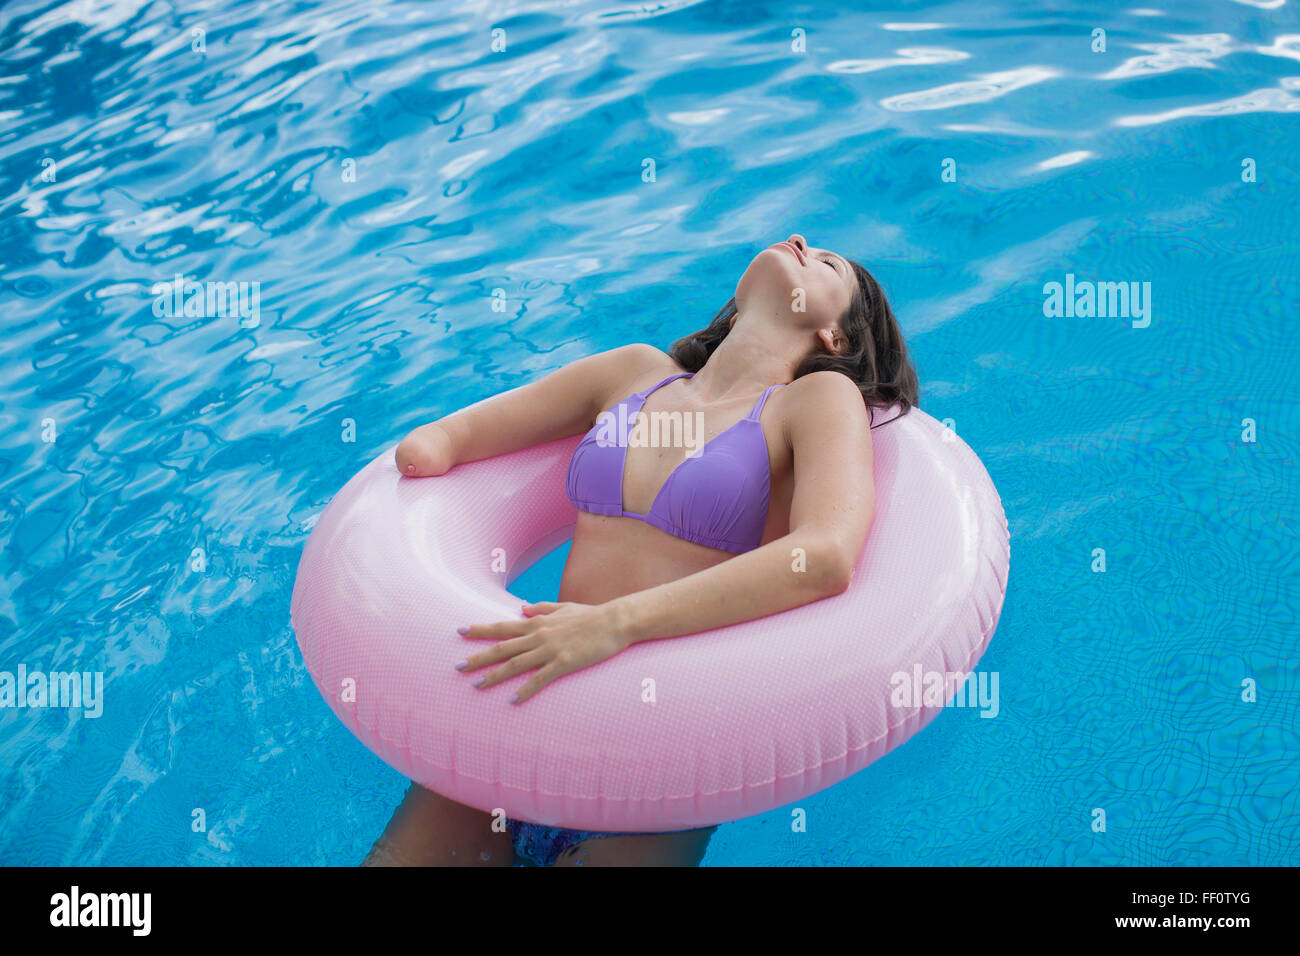 Mixed Race woman swimming in pool amputé Banque D'Images